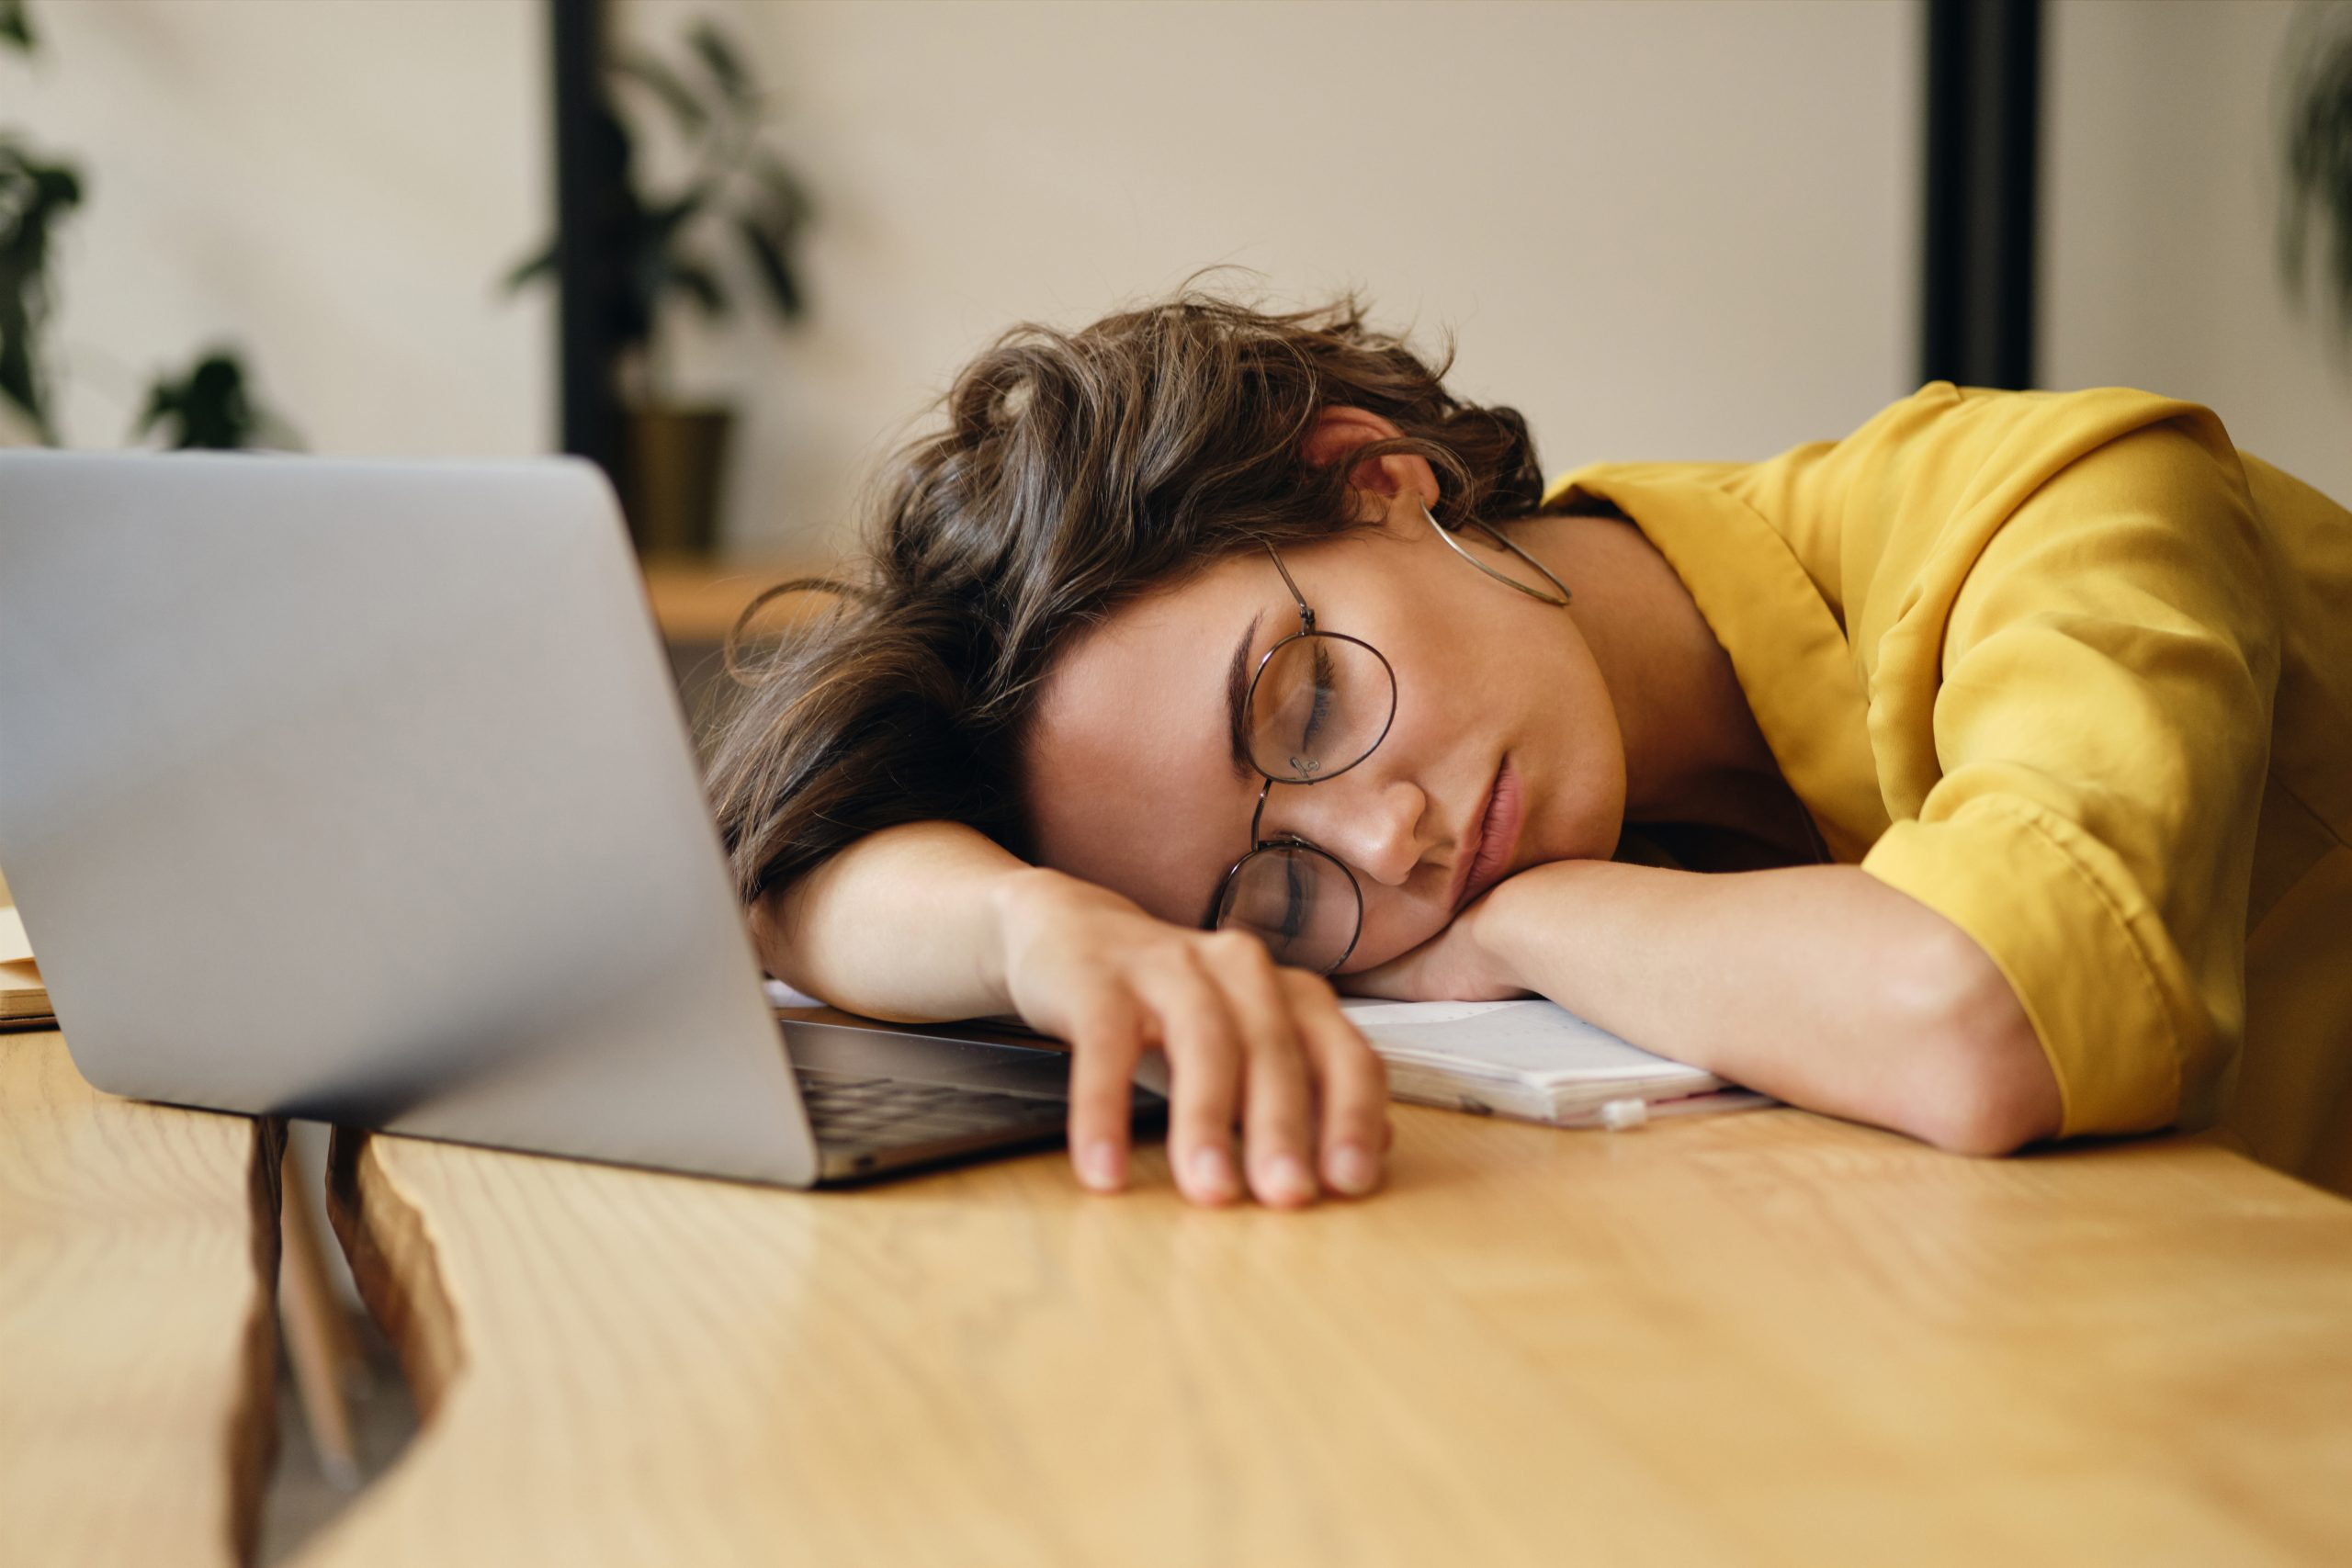 Young Tired Woman In Eyeglasses Sleeping On Desk With Laptop At Workplace Alone